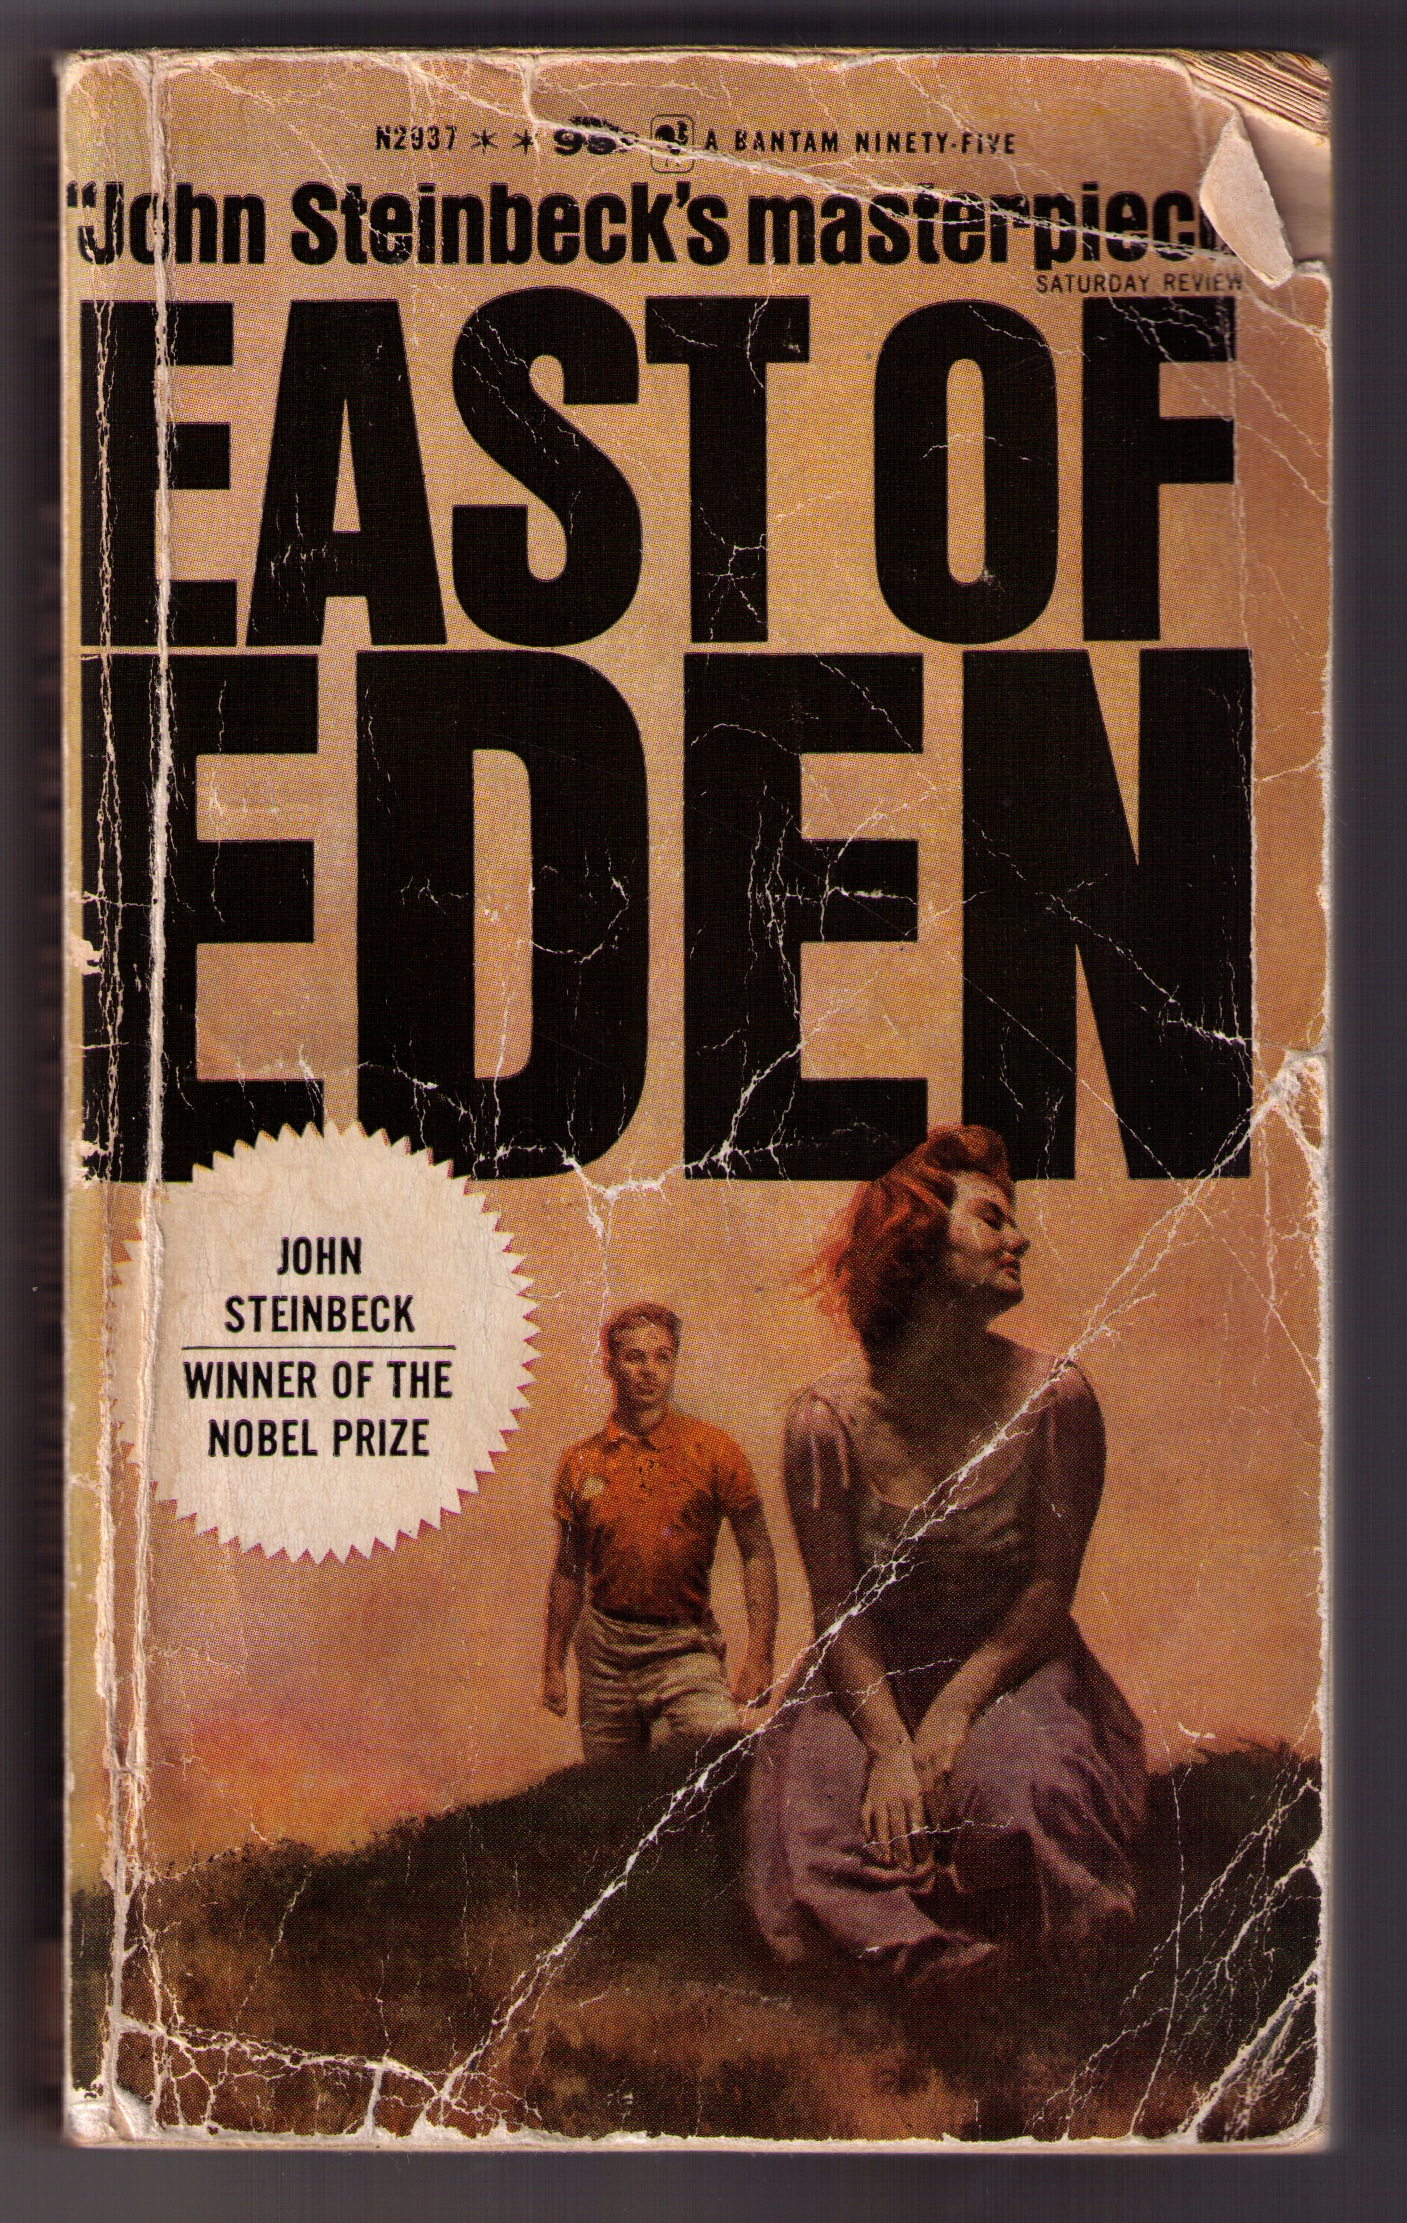 a review of steinbeck book east of eden 65 book reviews of east of eden by john steinbeck.